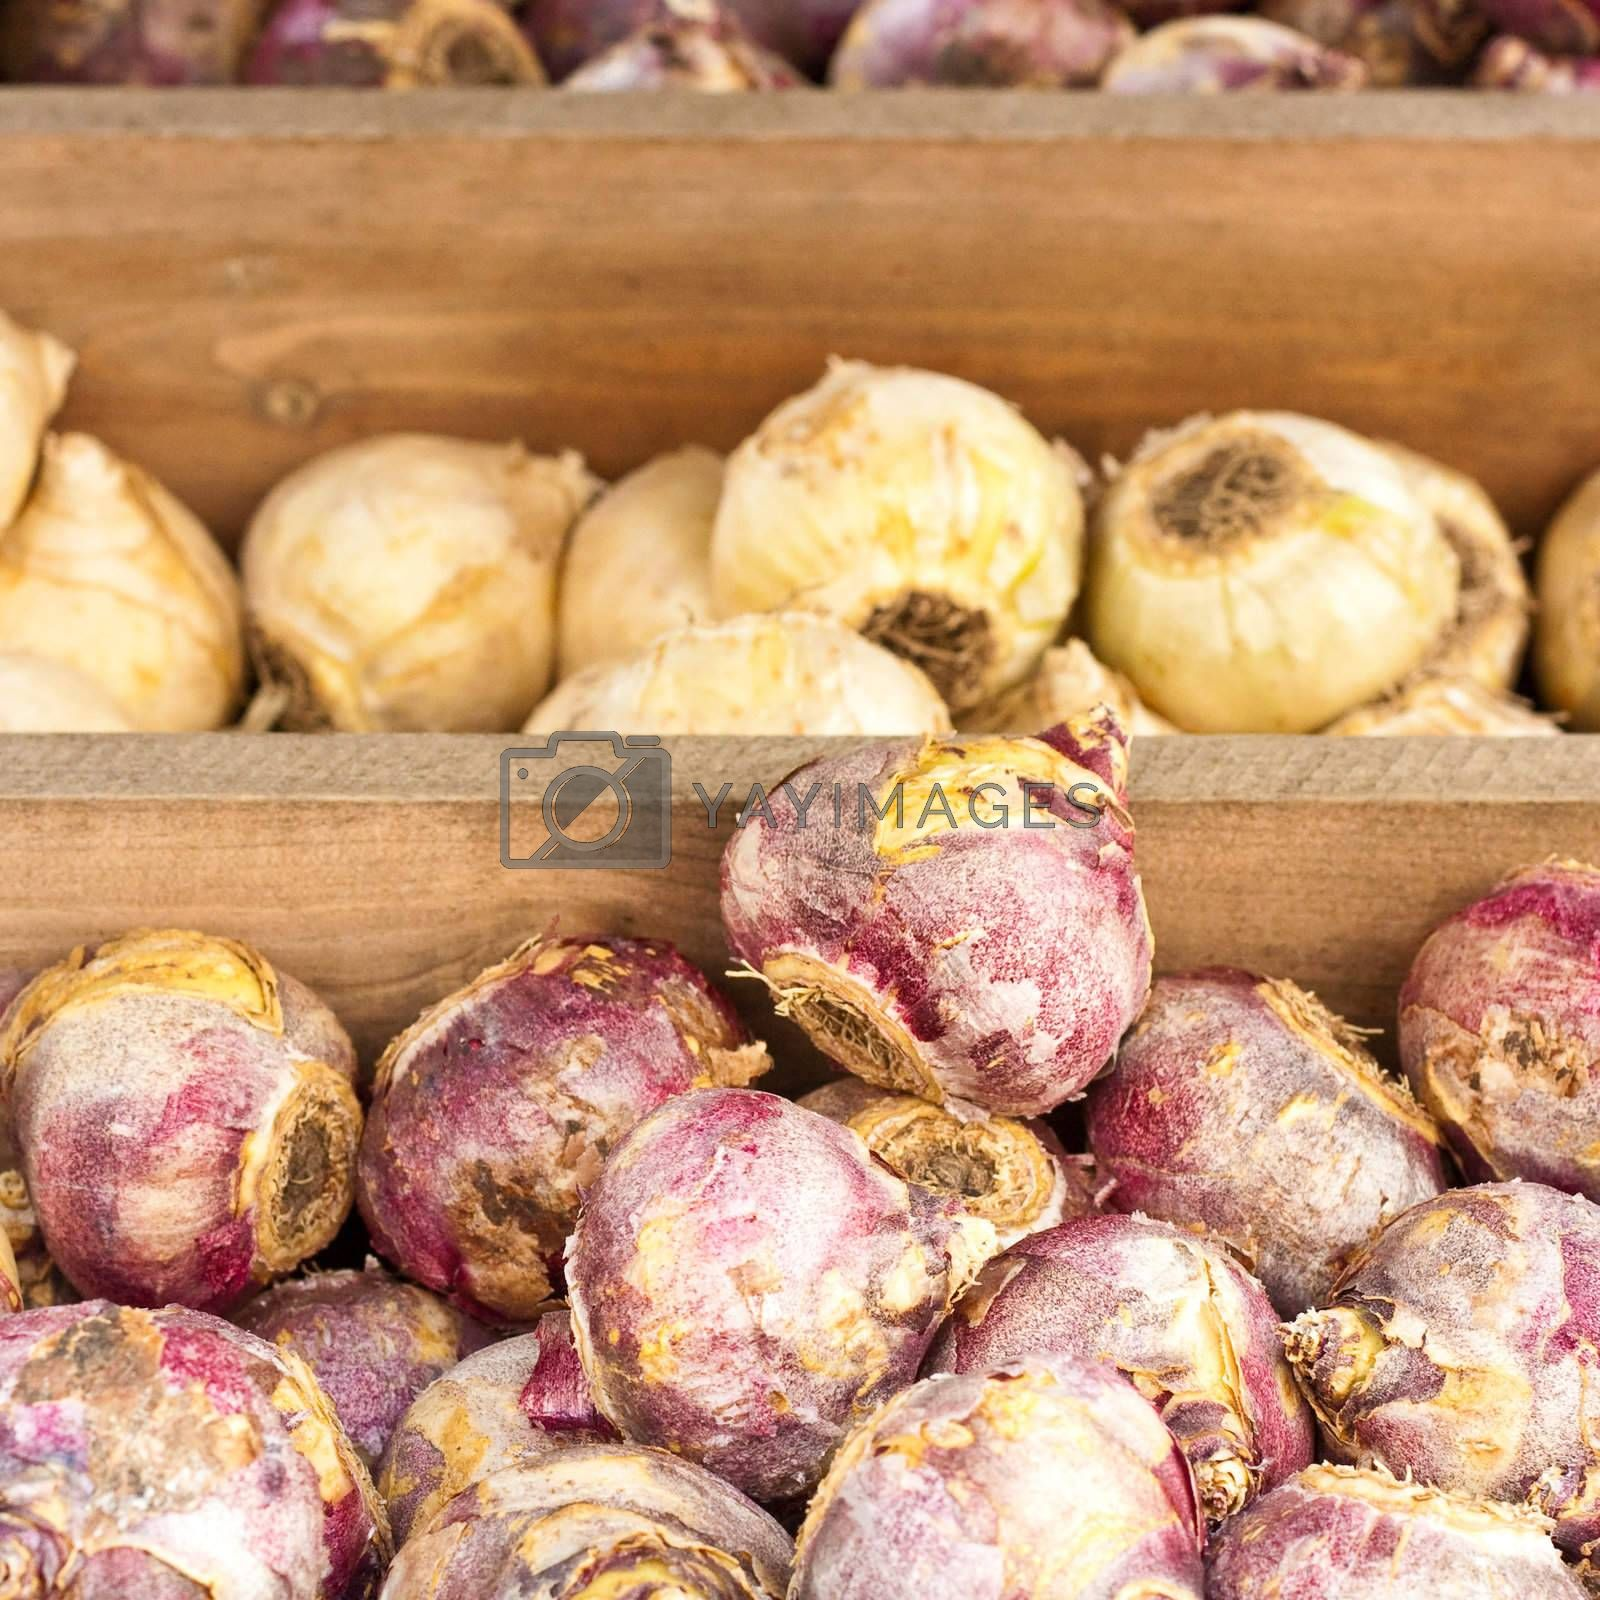 various spring flower bulbs for sale in a wooden crate